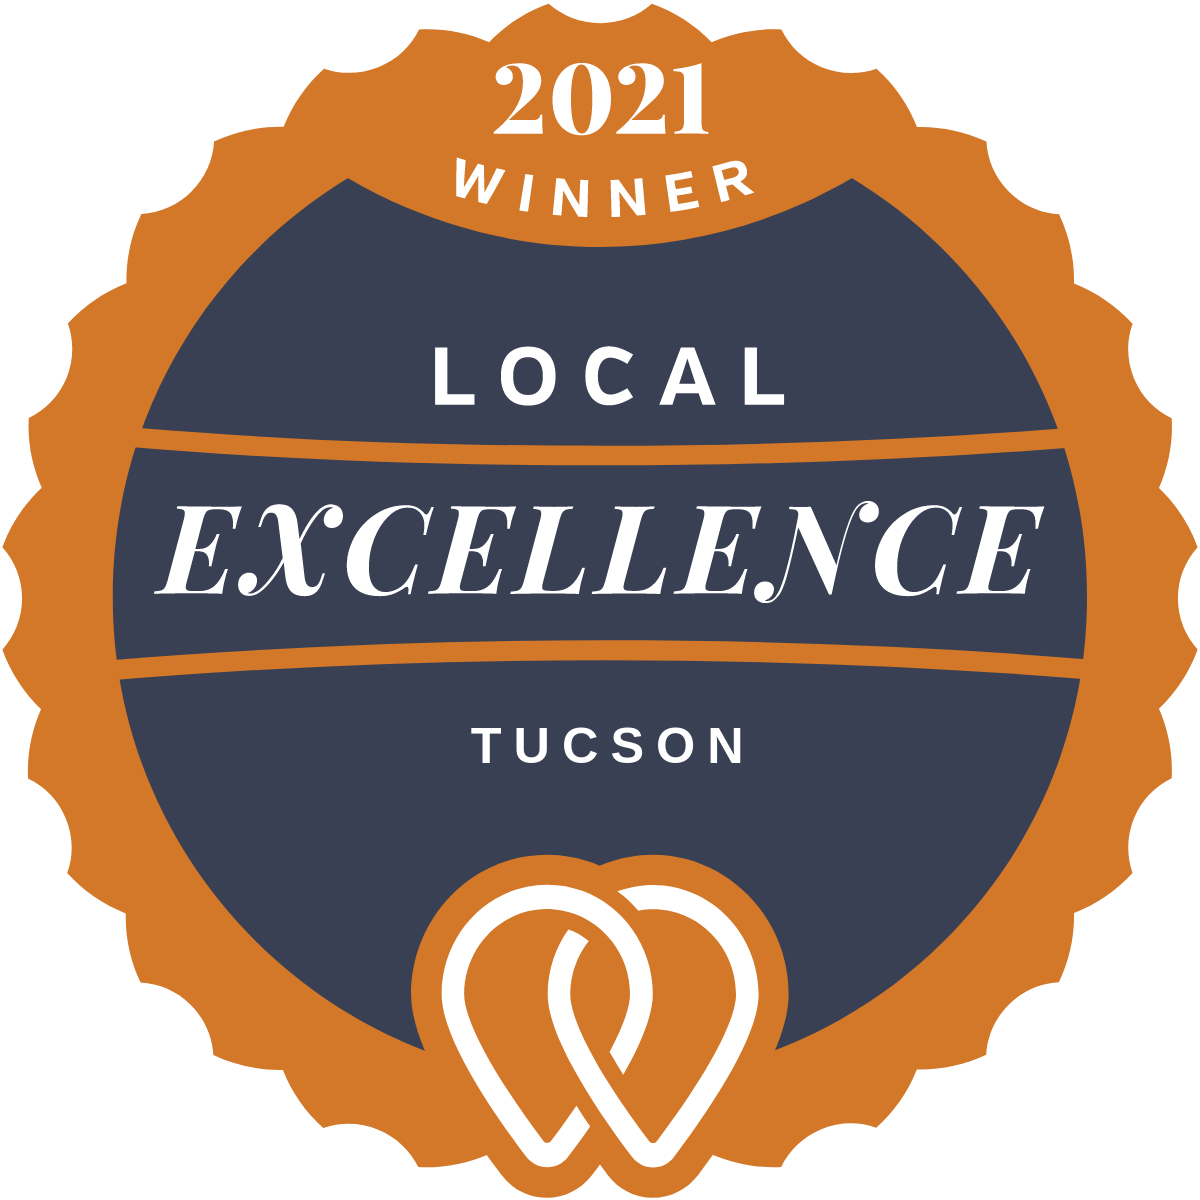 2021 Local Excellence Winner in Tucson, AZ